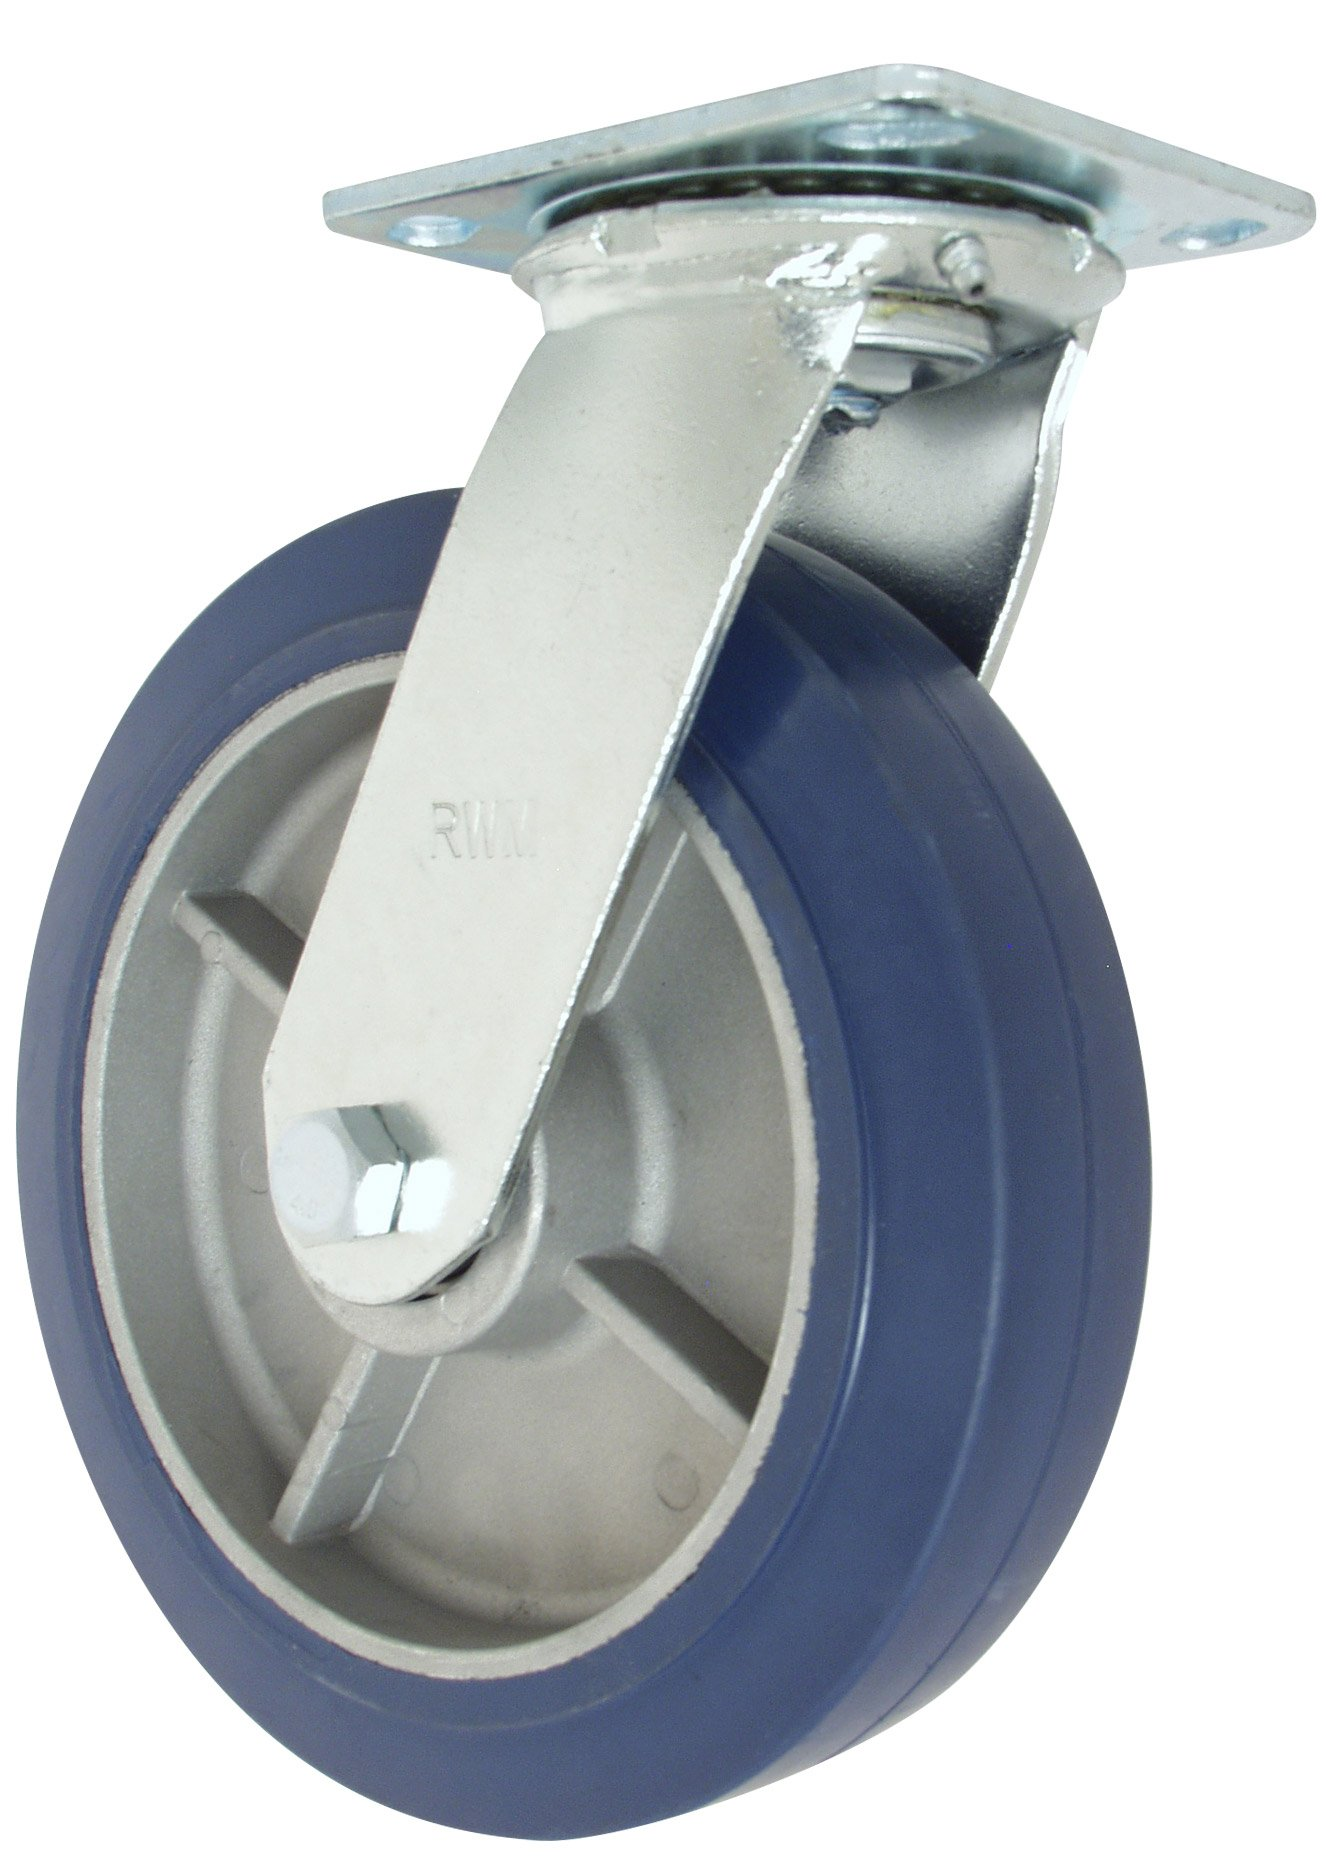 RWM Casters 45 Series Plate Caster, Swivel, Rubber on Aluminum Wheel, Ball Bearing, 750 lbs Capacity, 8'' Wheel Dia, 2'' Wheel Width, 9-1/2'' Mount Height, 4-1/2'' Plate Length, 4'' Plate Width